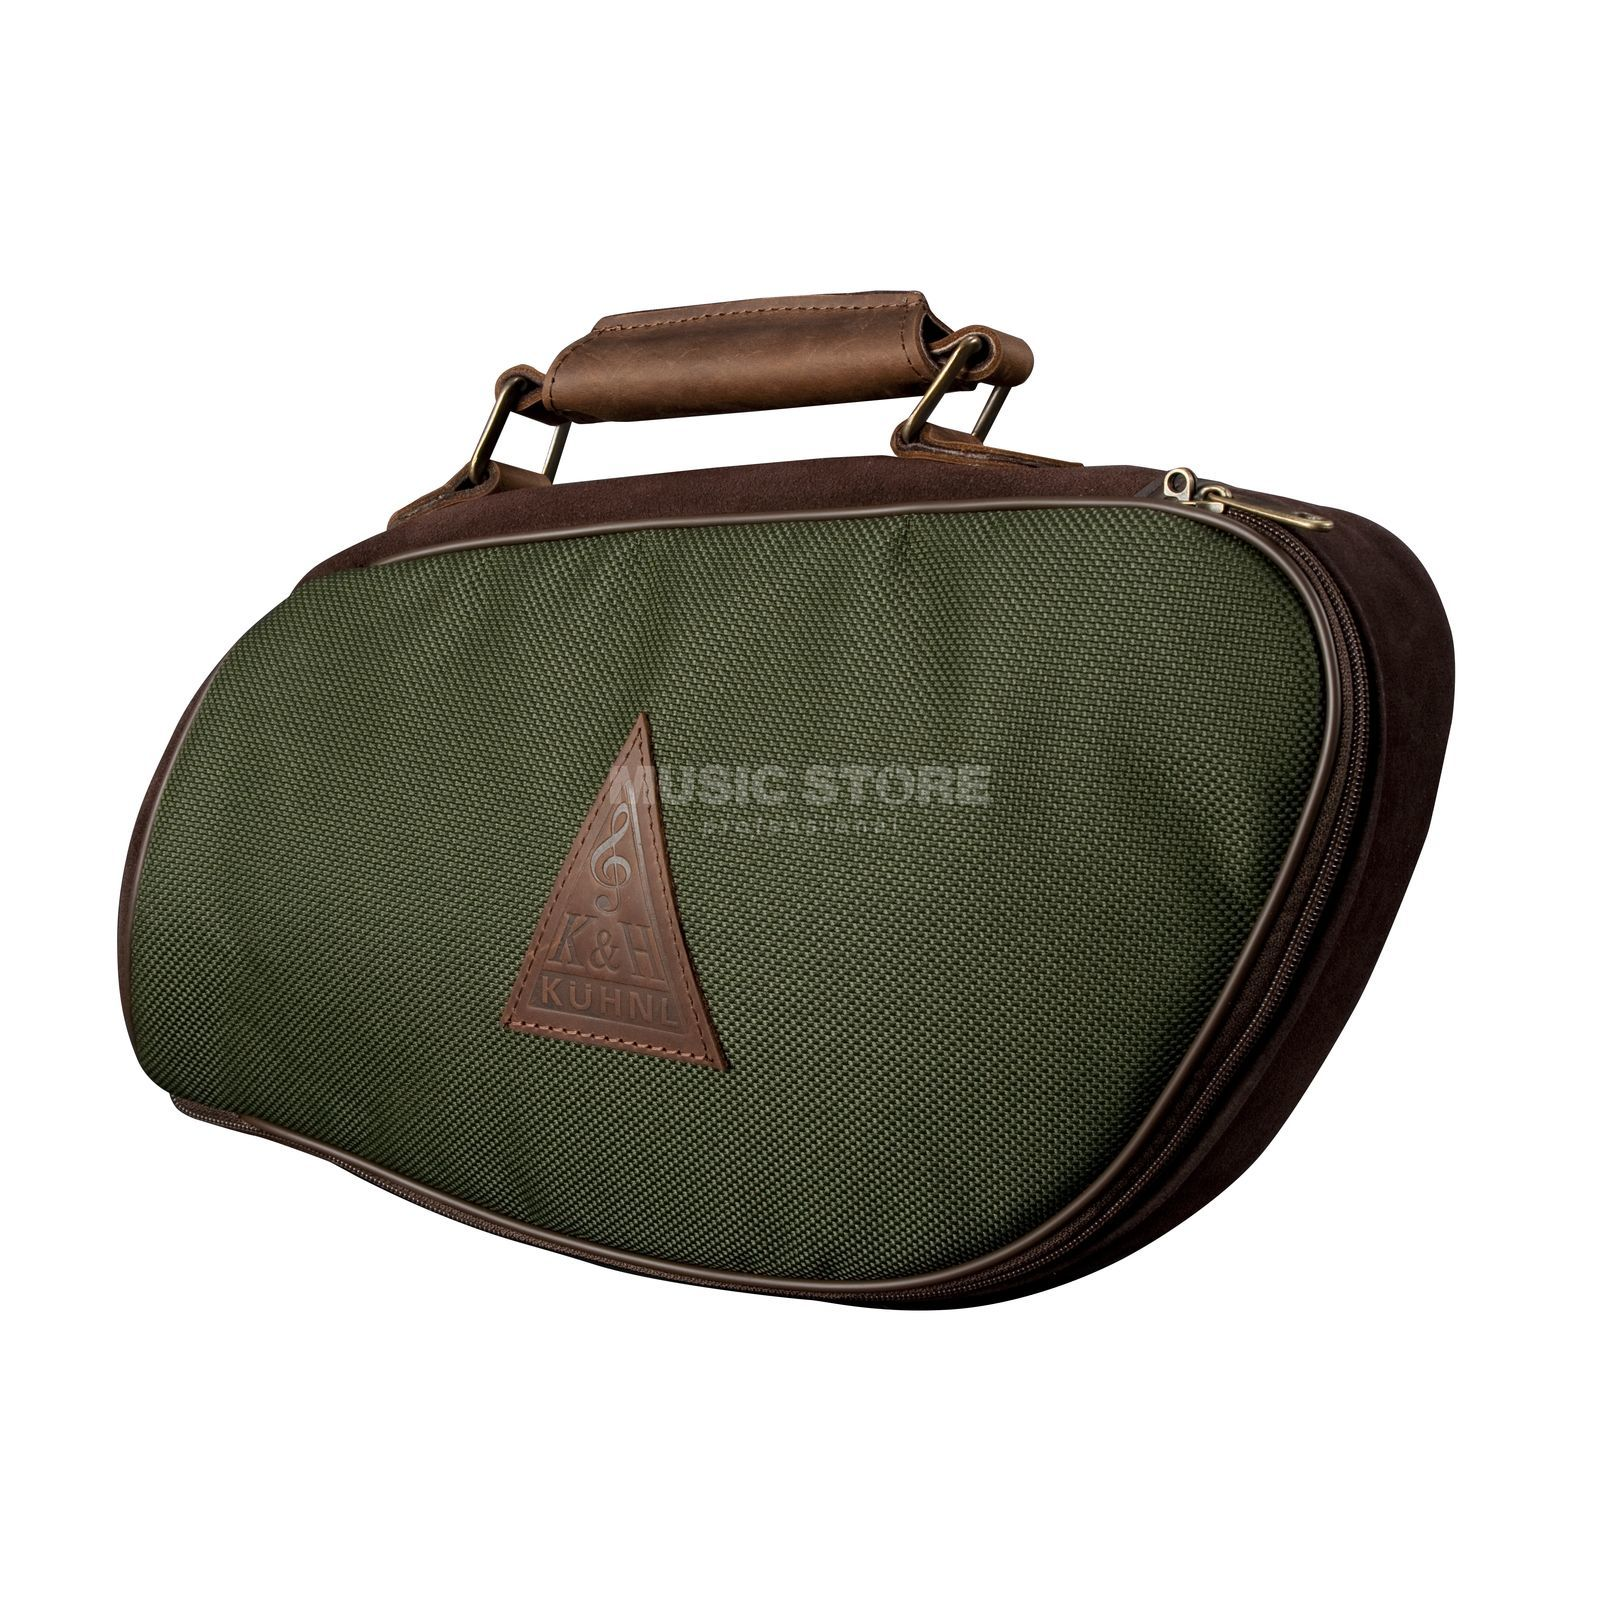 Kühnl & Hoyer forst-Pless-Horn Bag - green, water-resistant Immagine prodotto